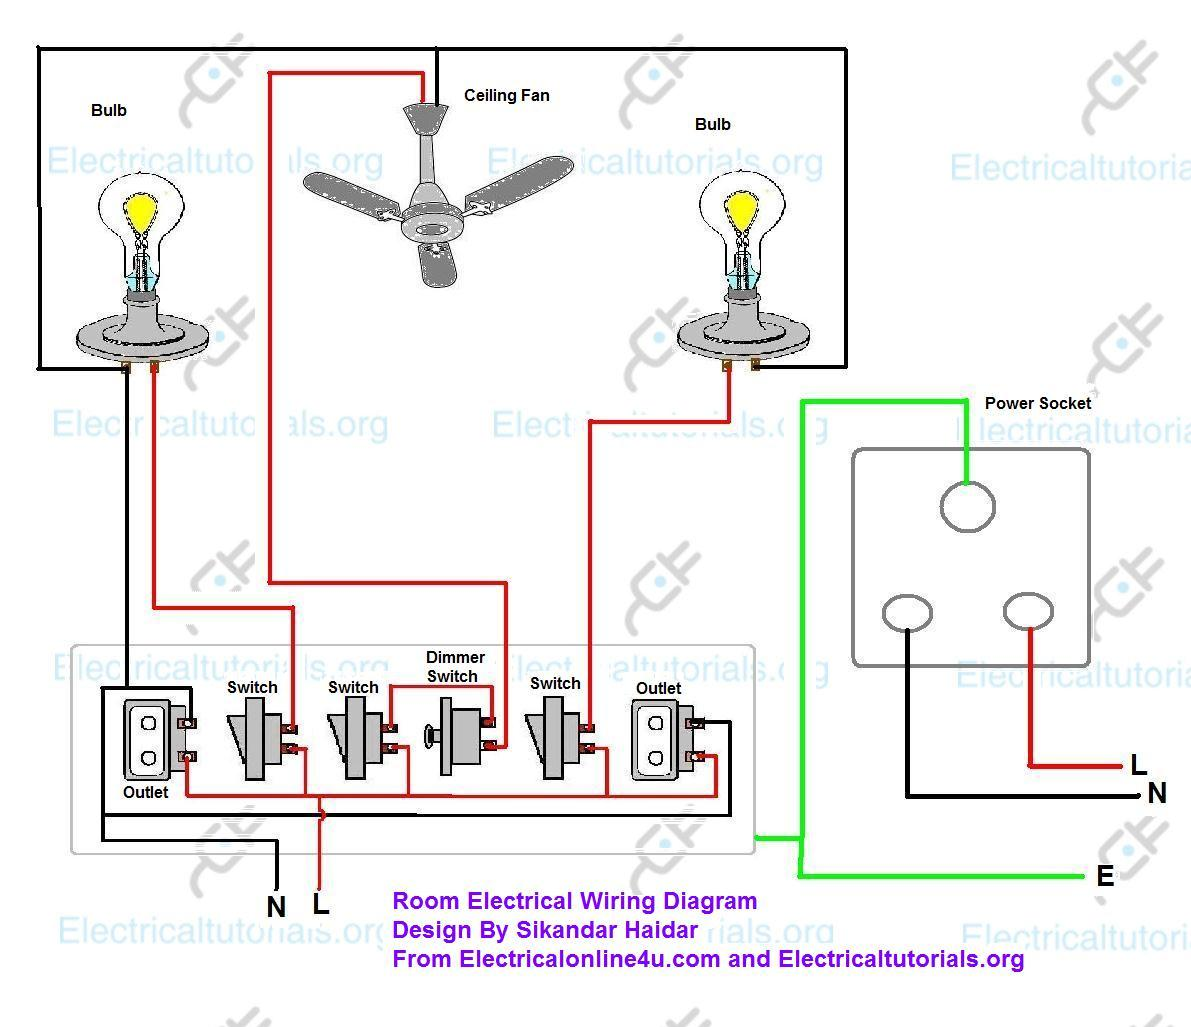 room wiring diagram wiring diagram home wiring diagram for room stat wiring diagram for room [ 1191 x 1027 Pixel ]